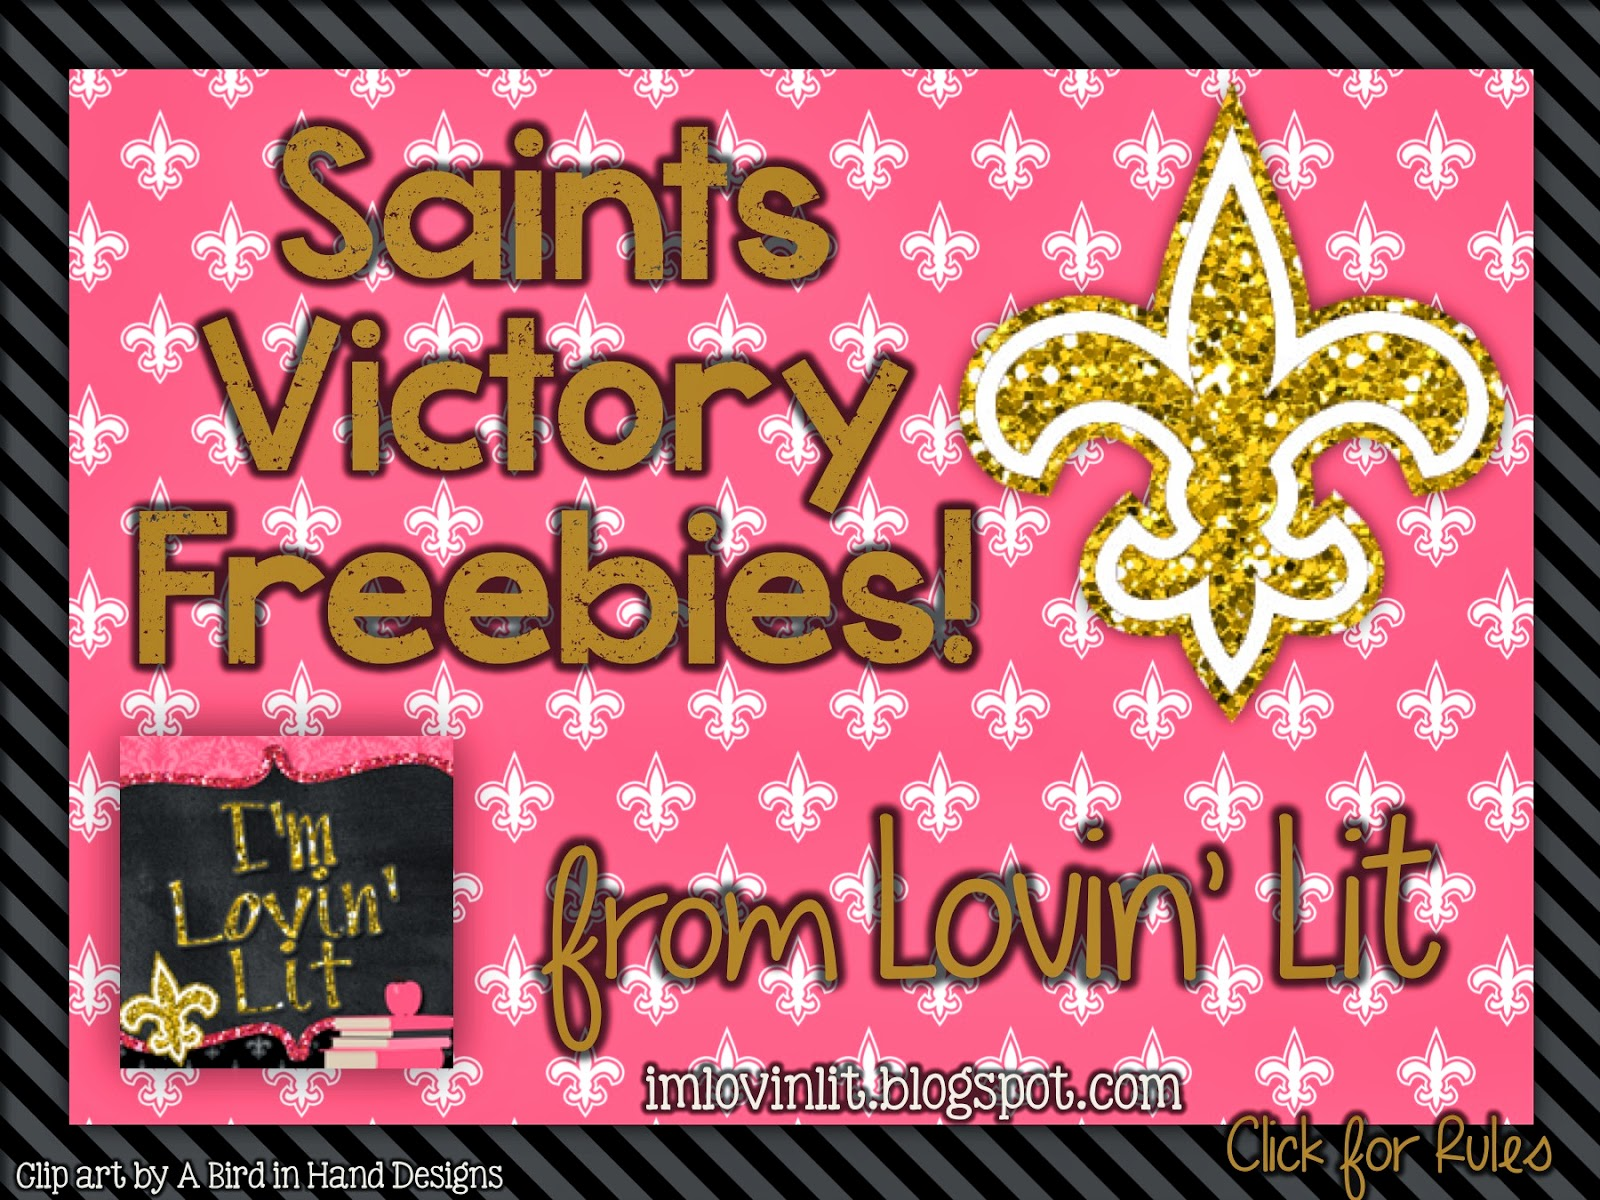 Victory Freebies #4